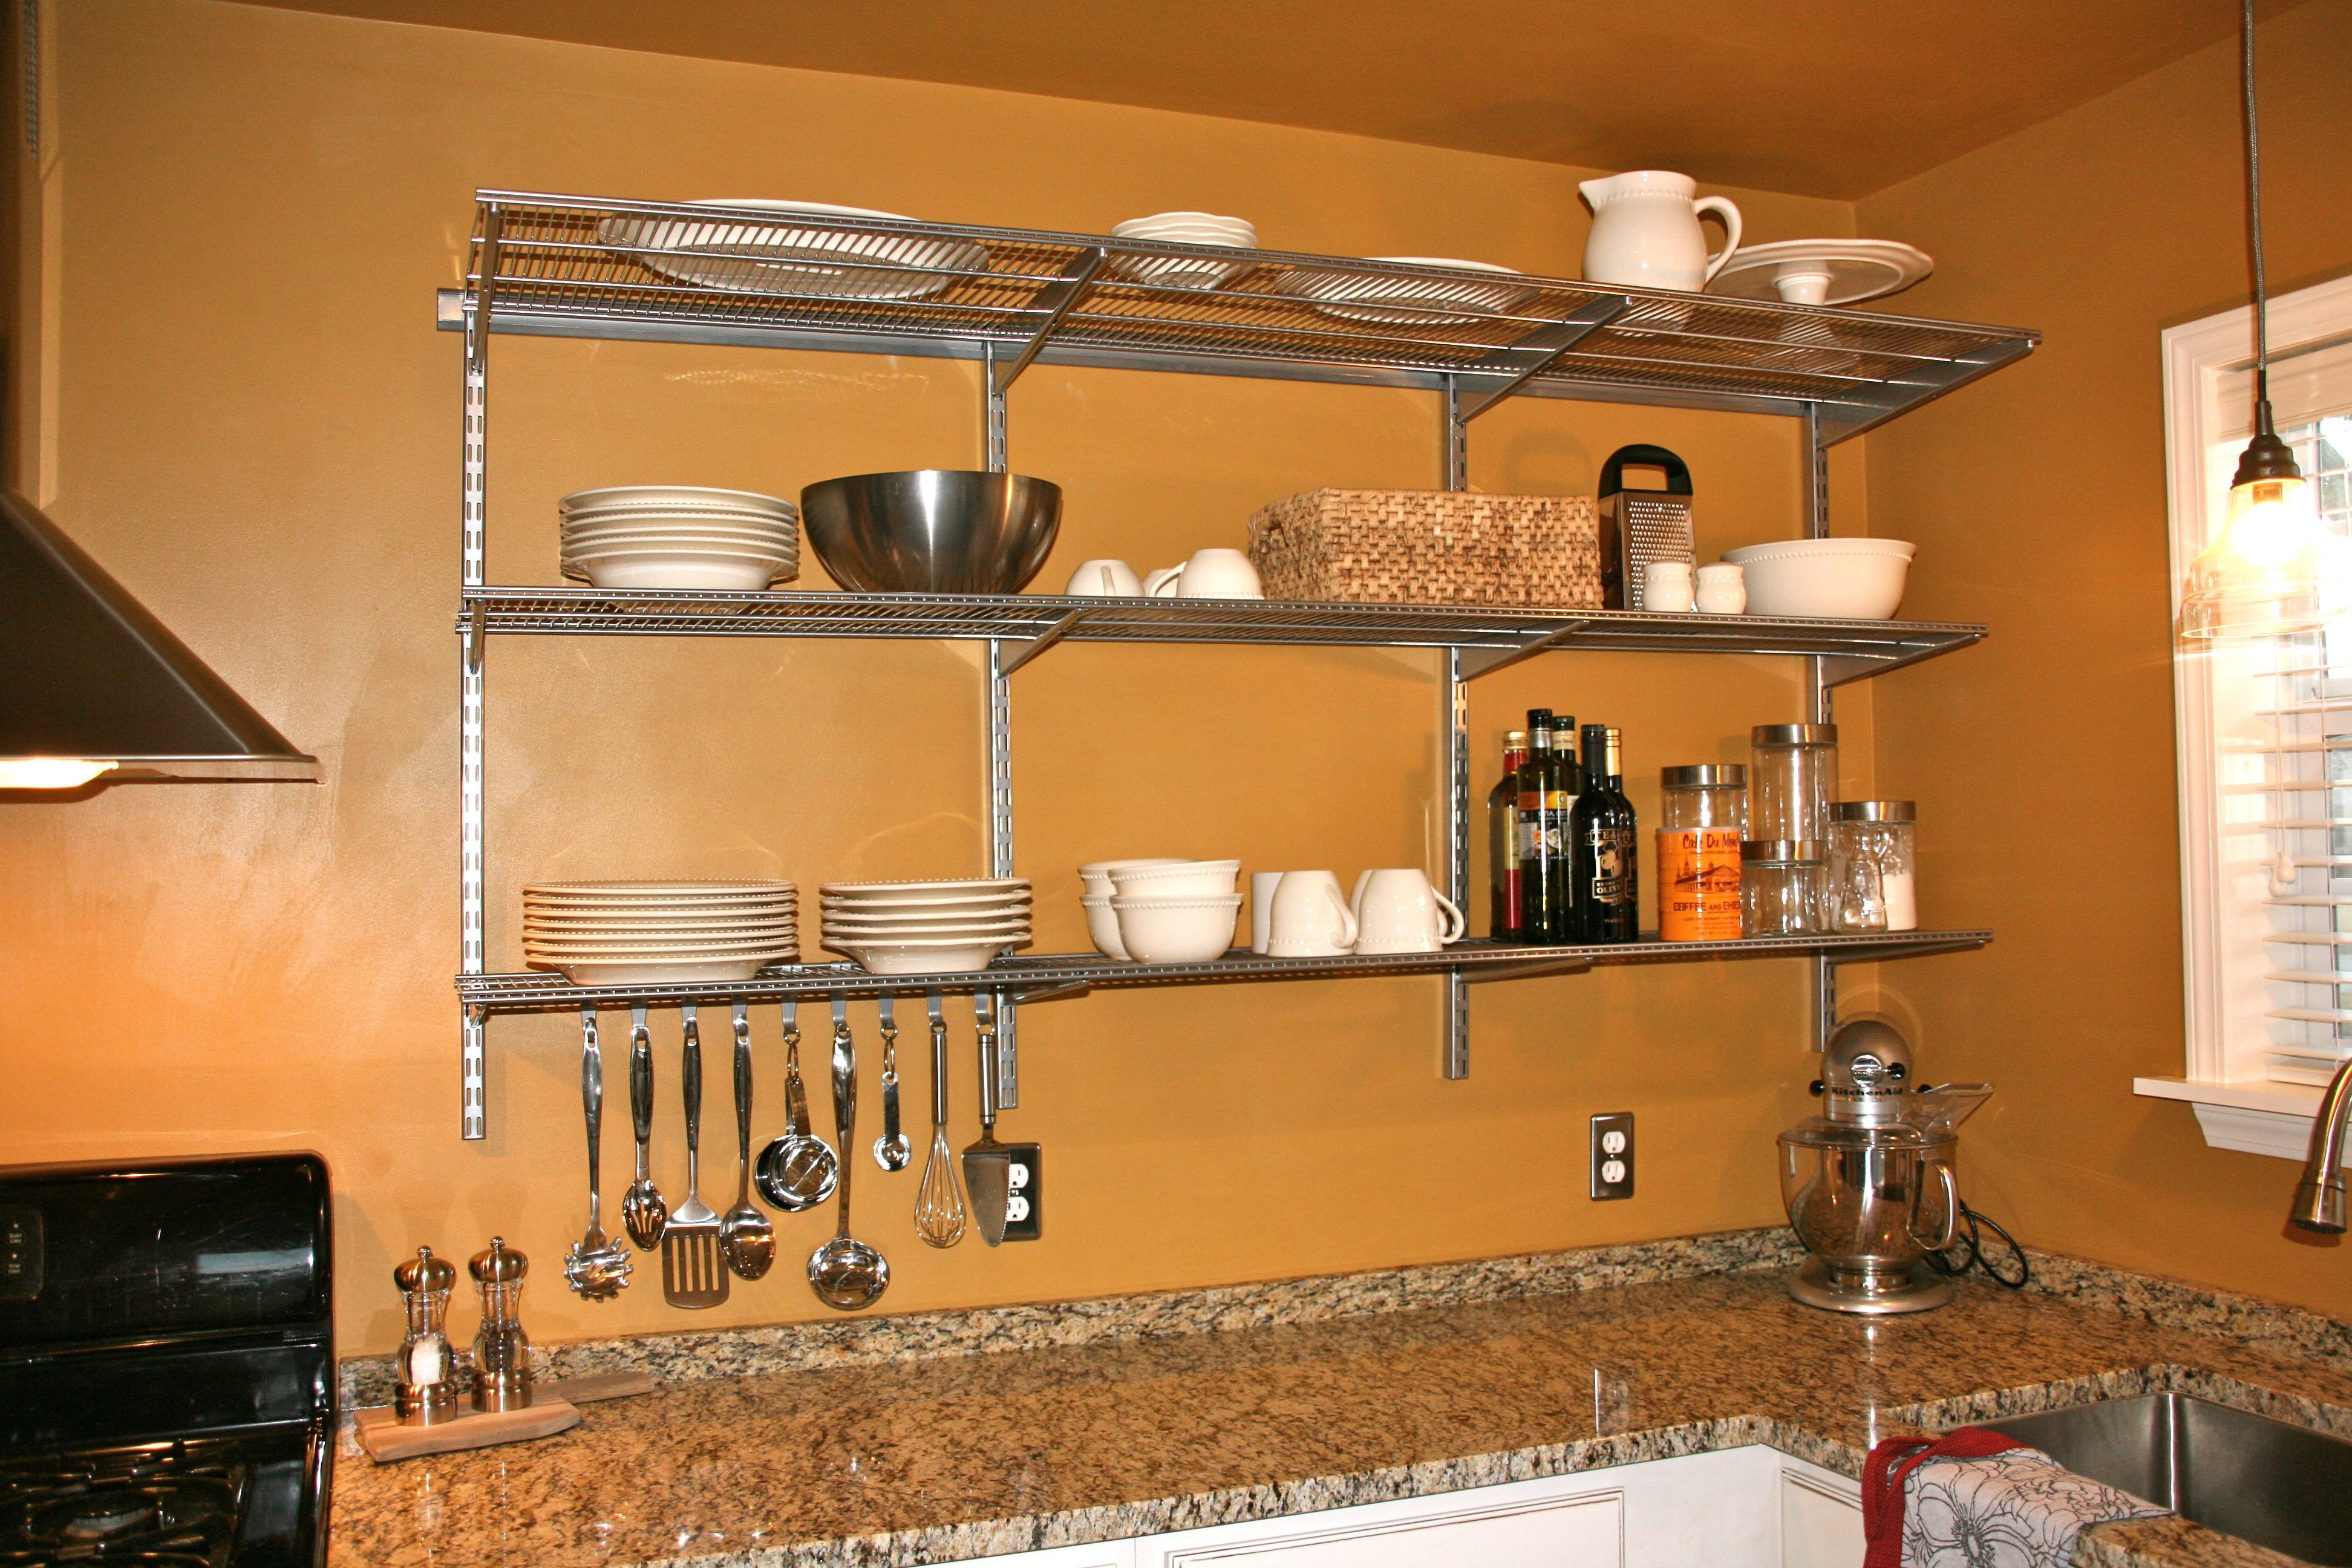 Kitchen Shelves Wall Mounted Pin By Dollar Ranch V2 On Dollar Ranch Kitchen Resources